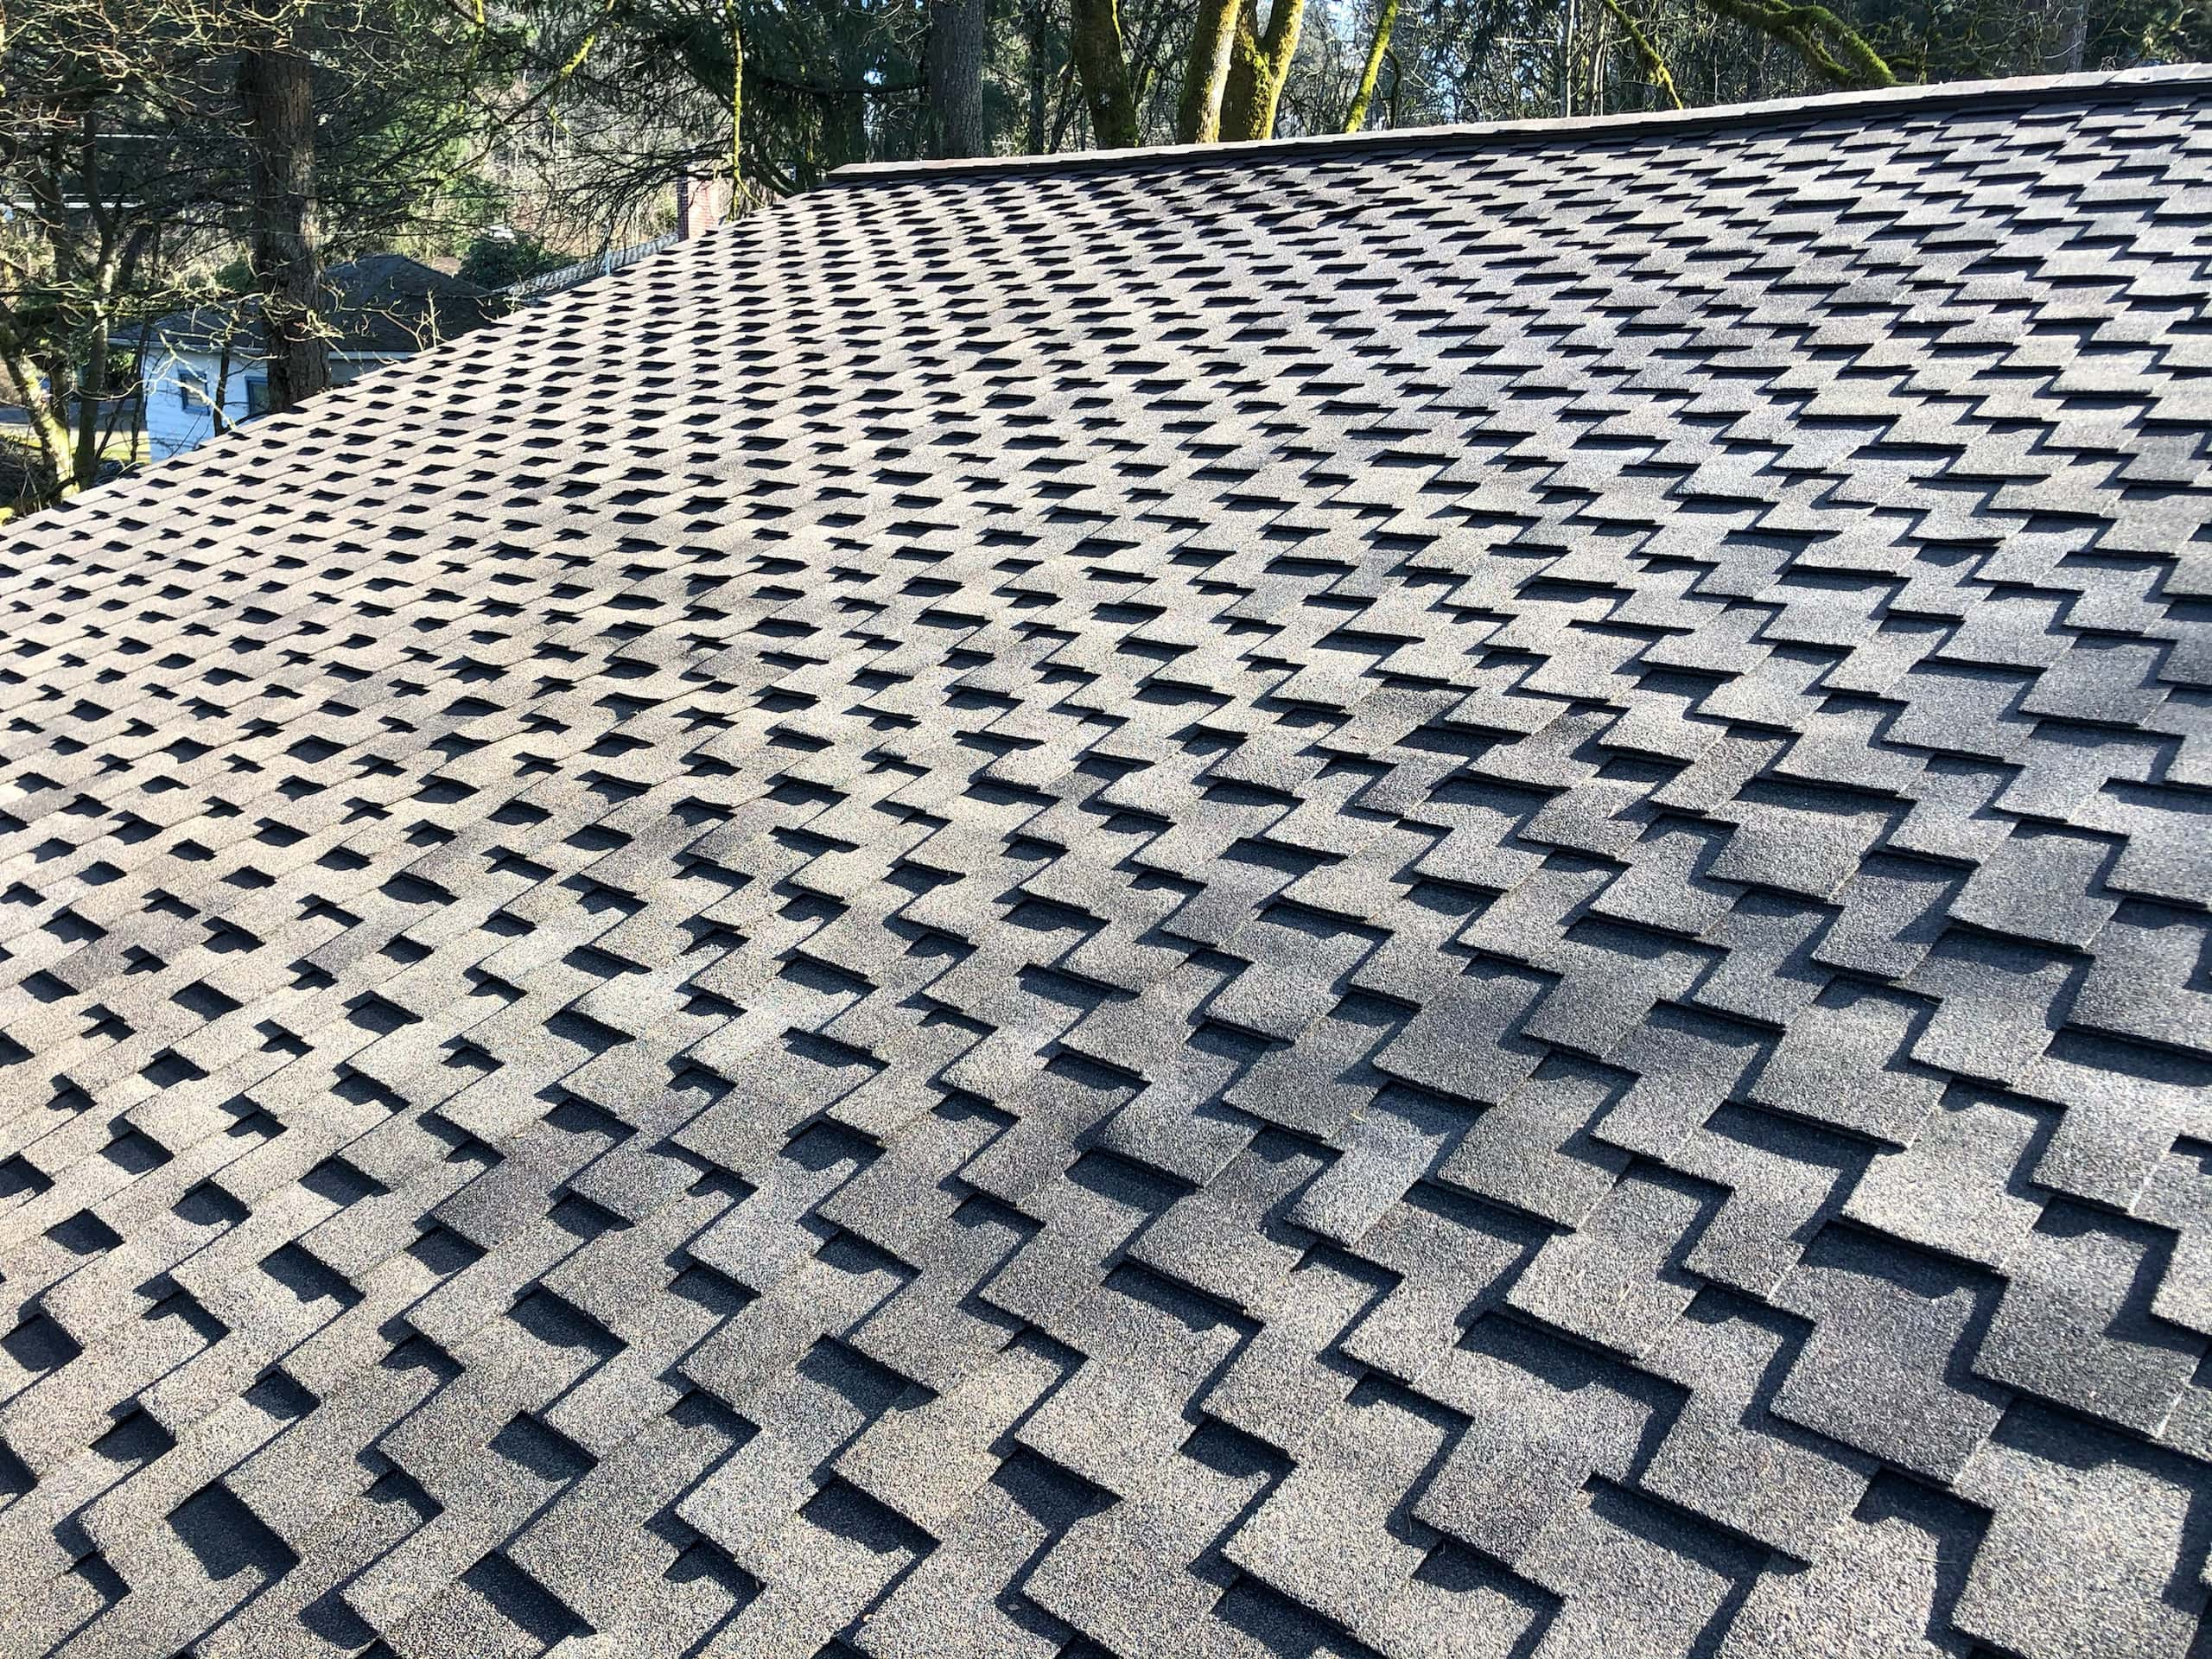 Reliance Roof Pros | Lake Oswego | New Roof | Pabco Paramount Algae Defender Oakwood | Best in Class